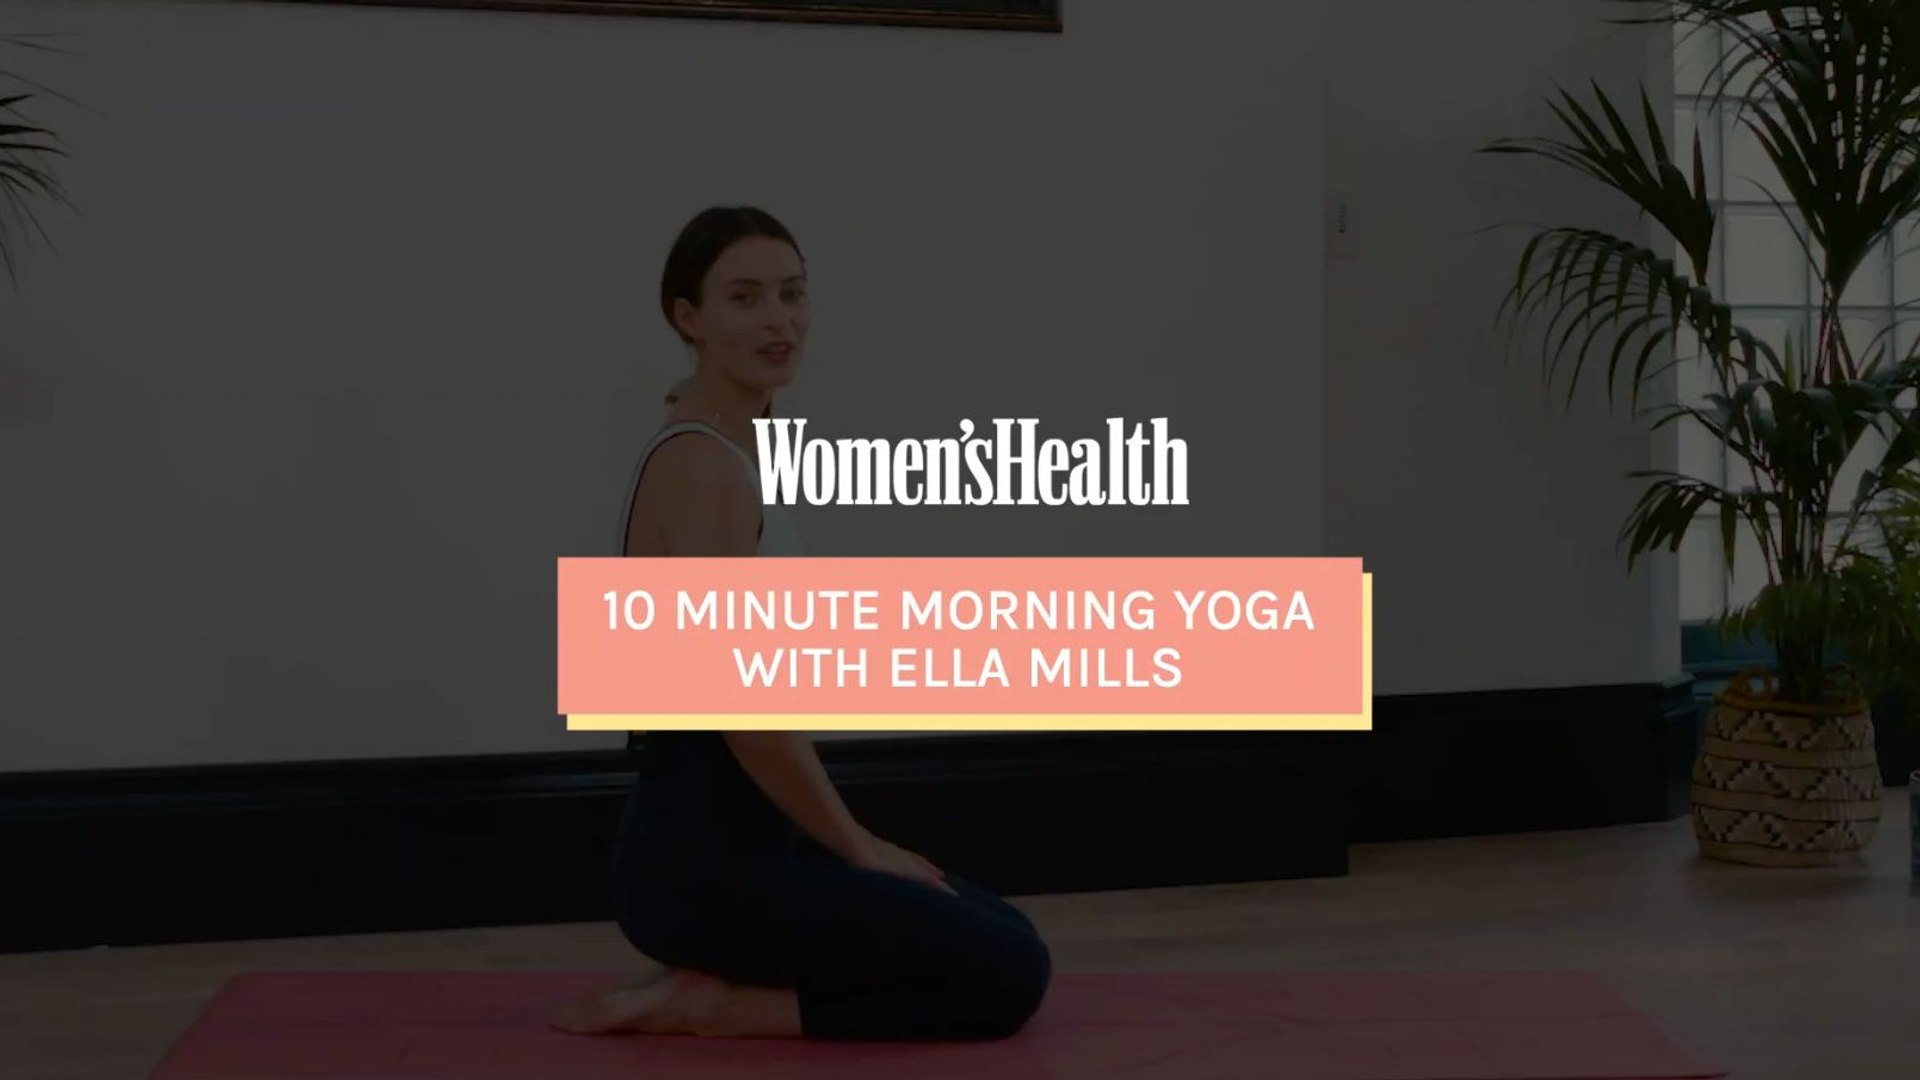 10 Minute Morning Yoga with Ella Mills